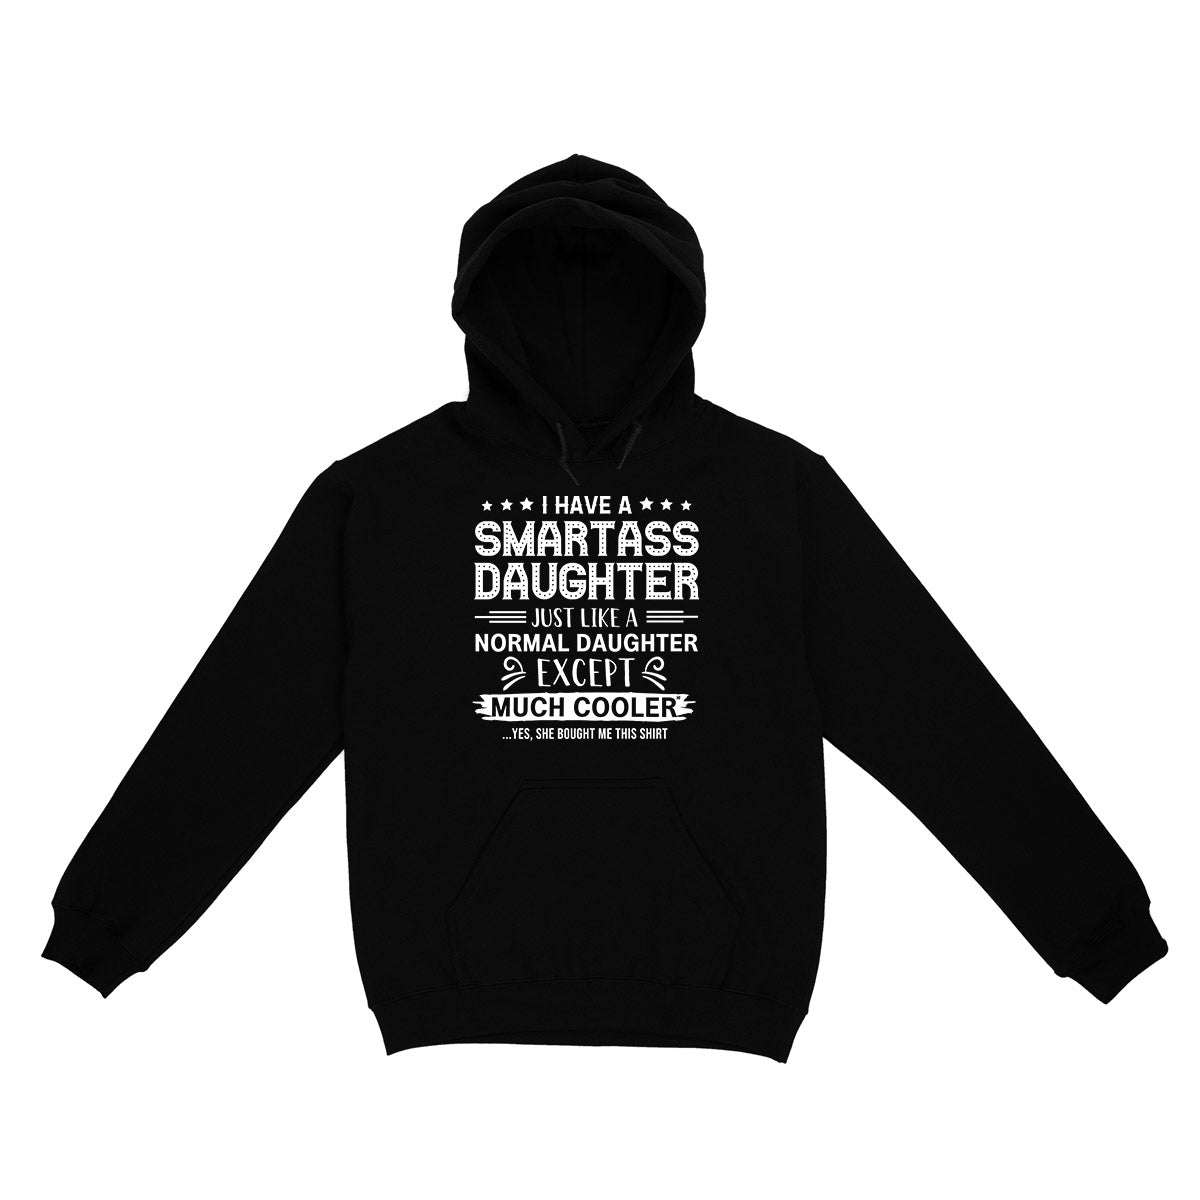 Smartass Daughter Buy Me This Shirt EZ02 0604 Hoodie